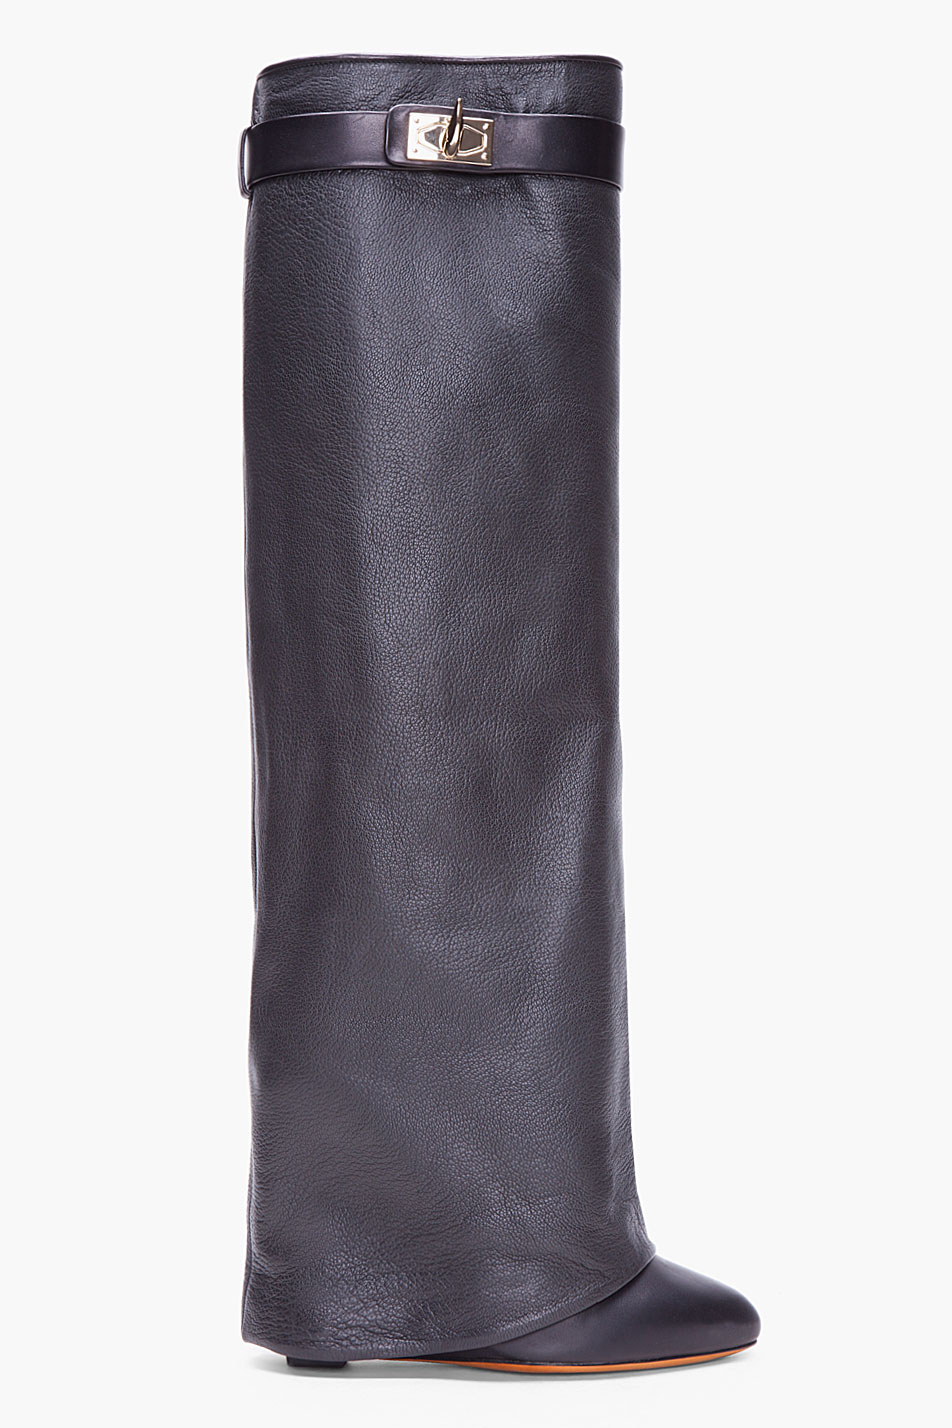 givenchy black leather shark tooth boots in black lyst